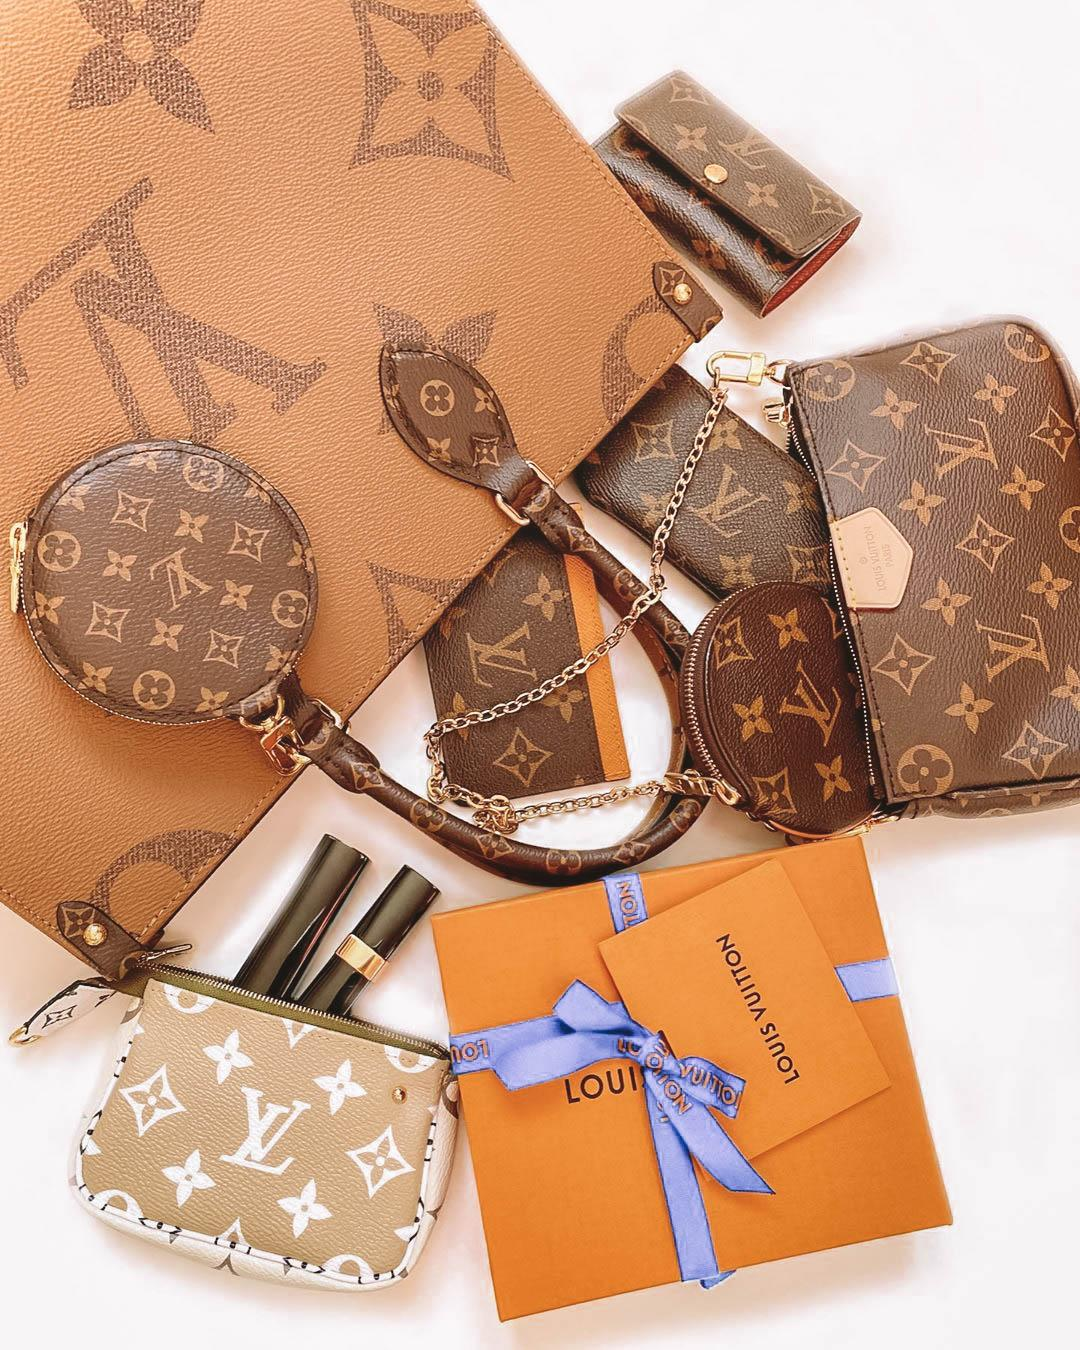 where to buy a louis vuitton second hand